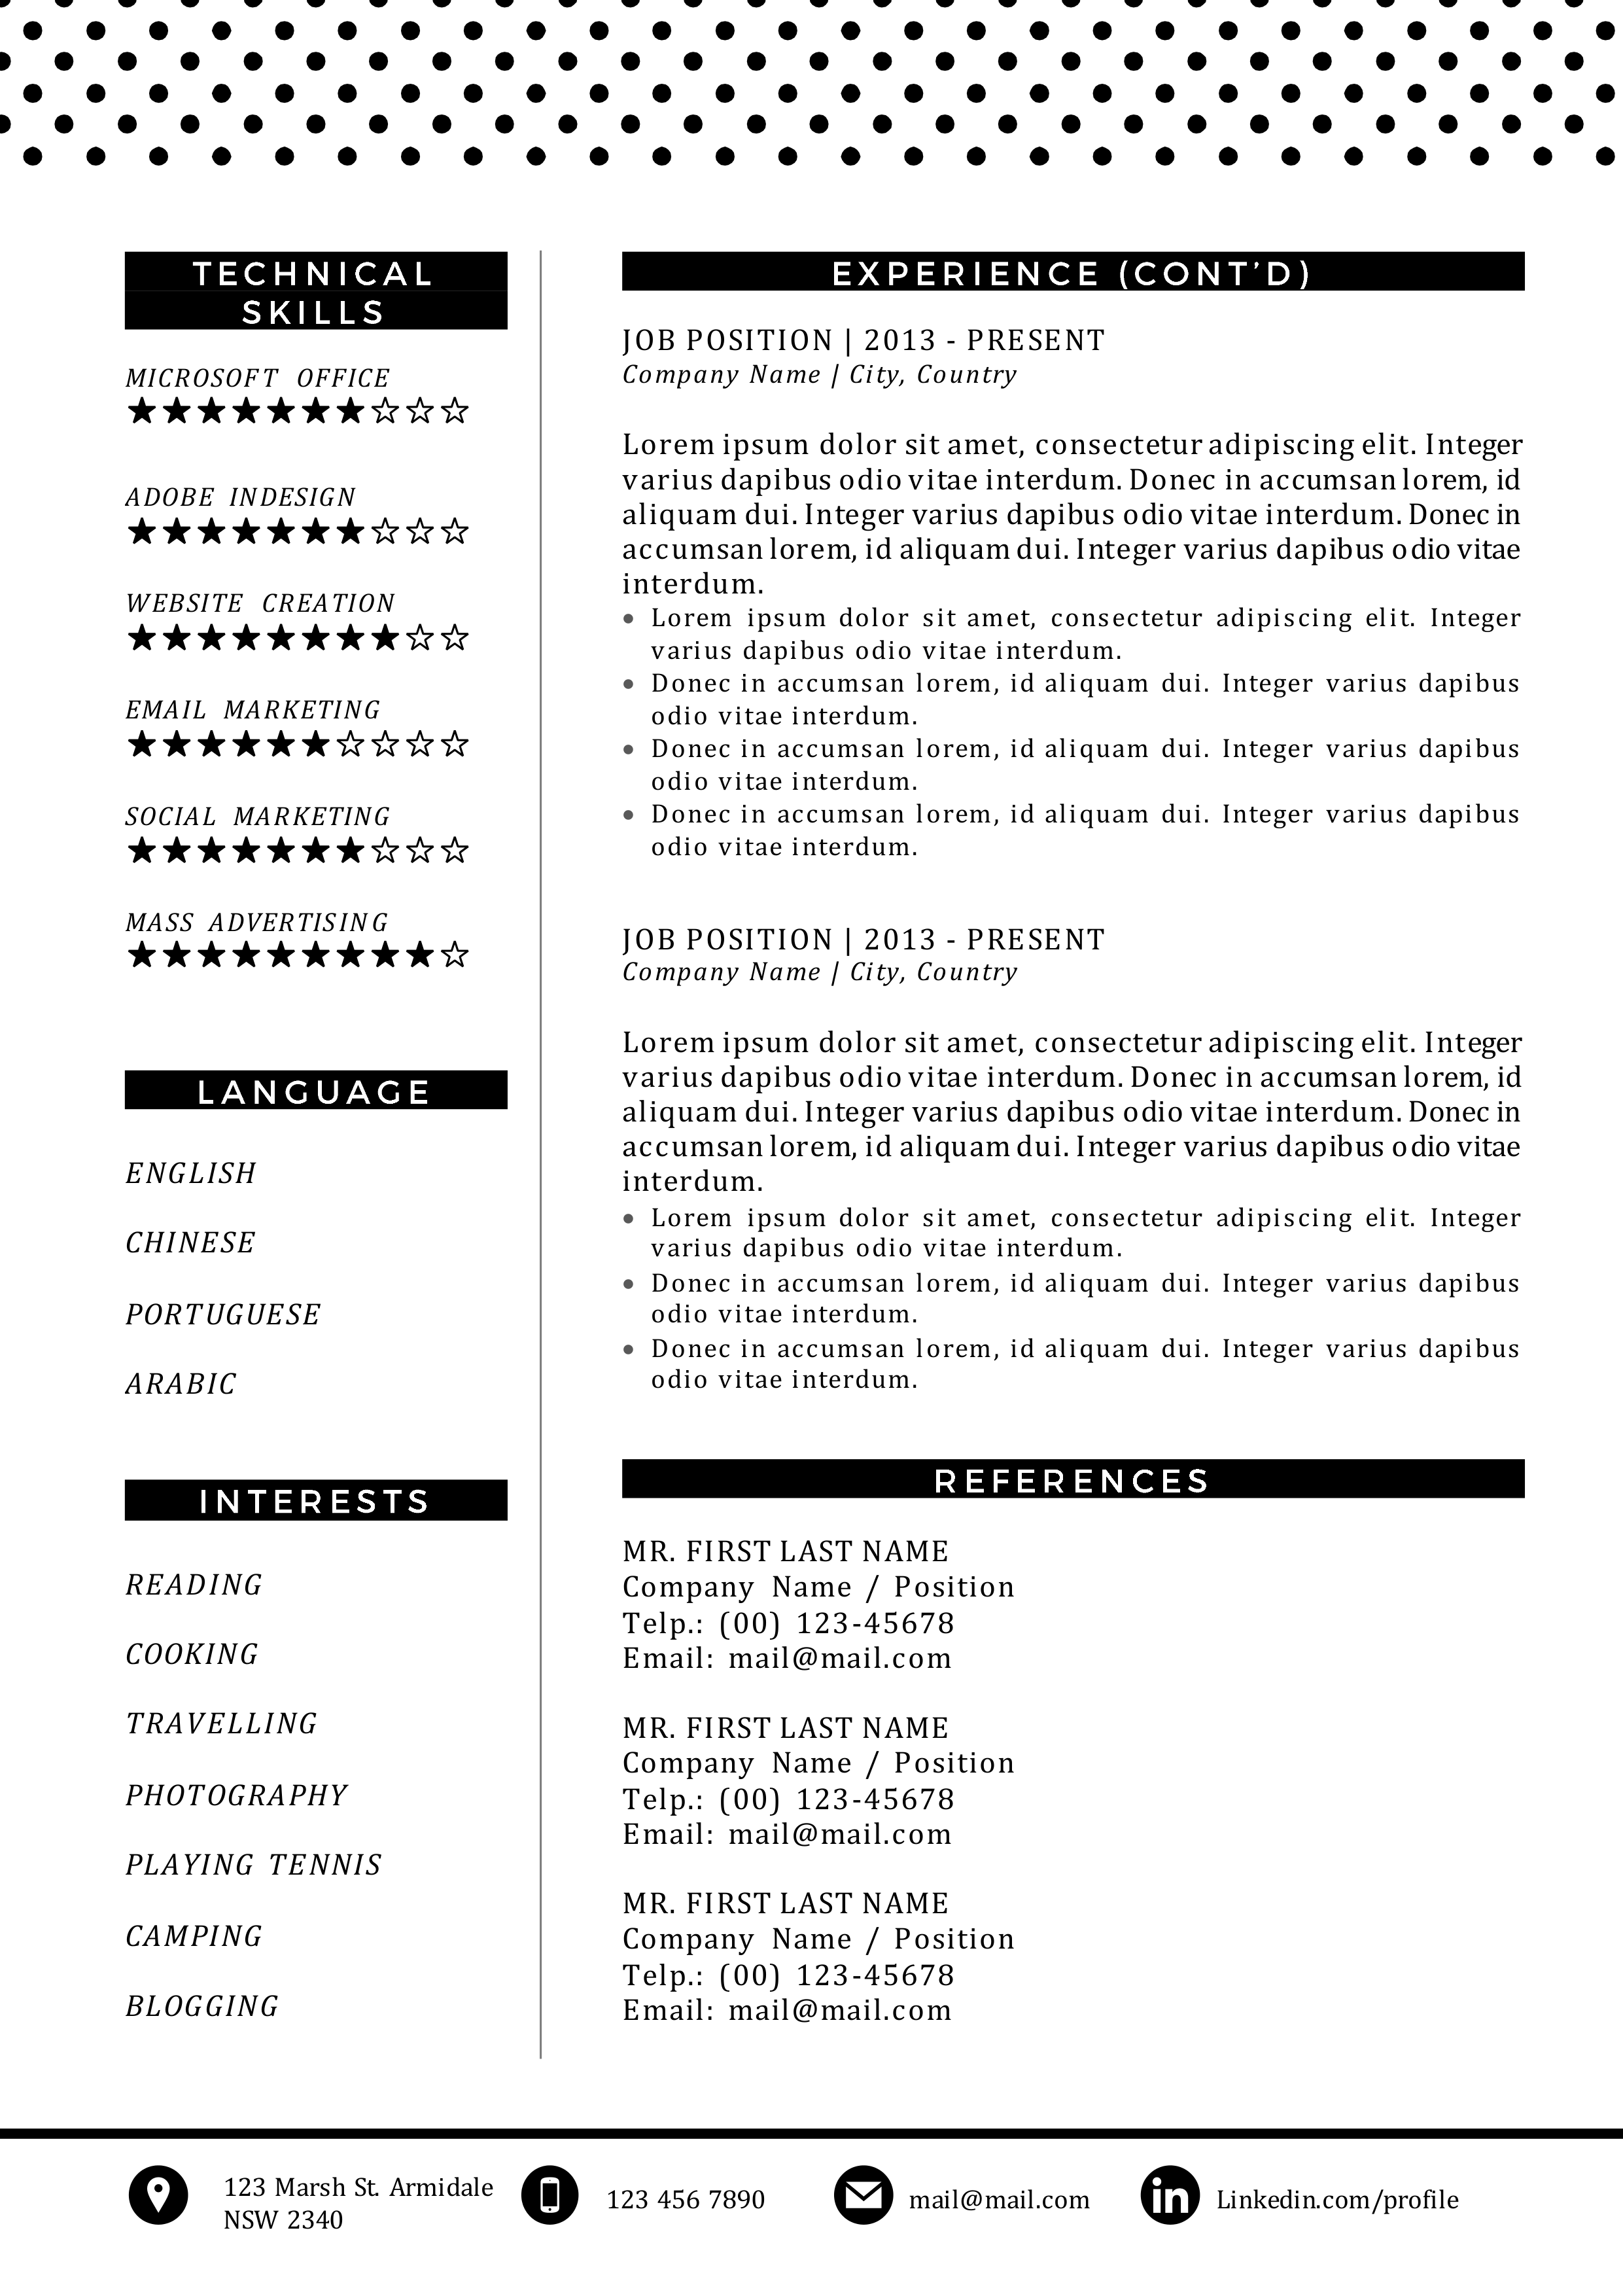 long resume template with second page for more details